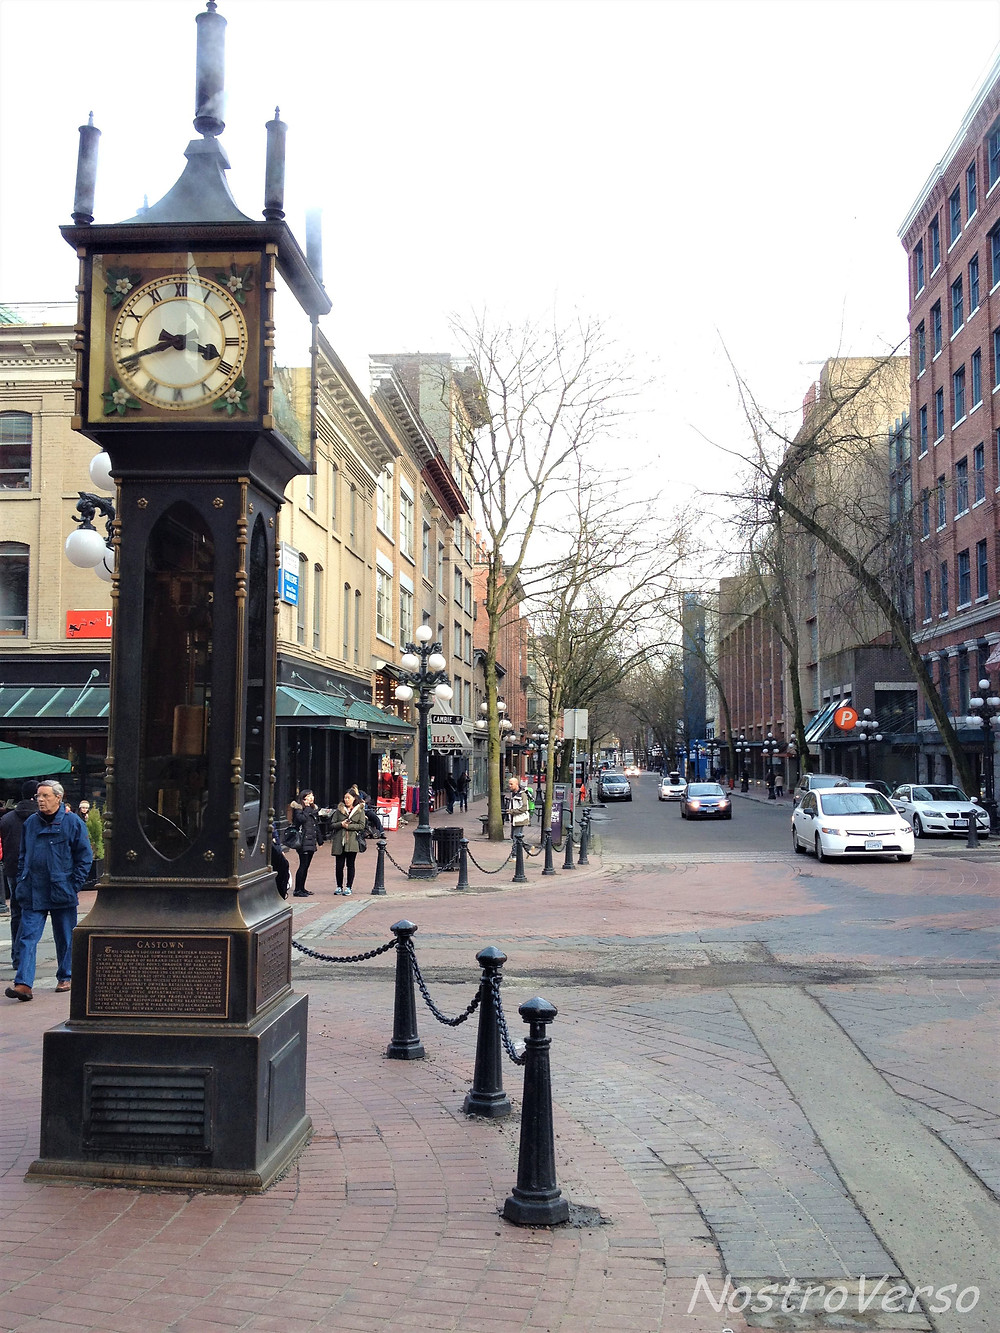 Steam clock - Gastown - Vancouver